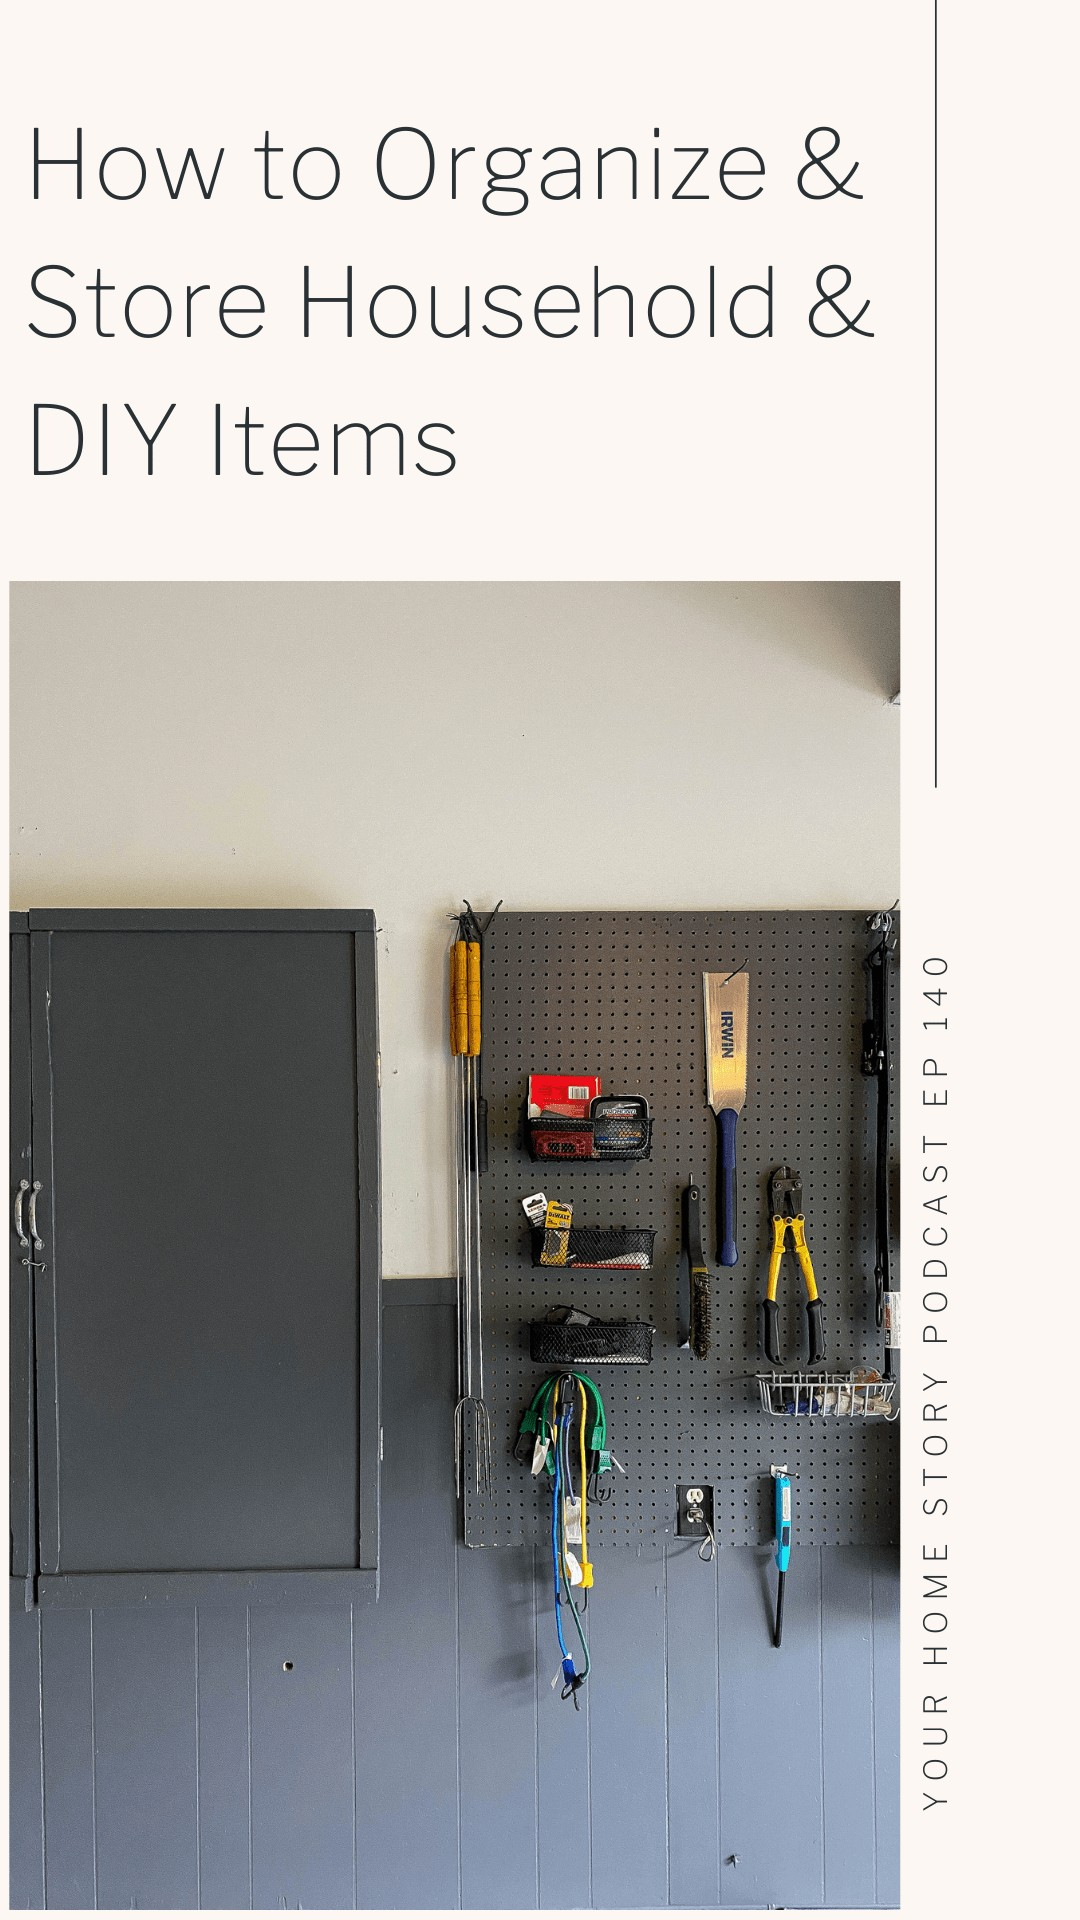 store and organize household supplies